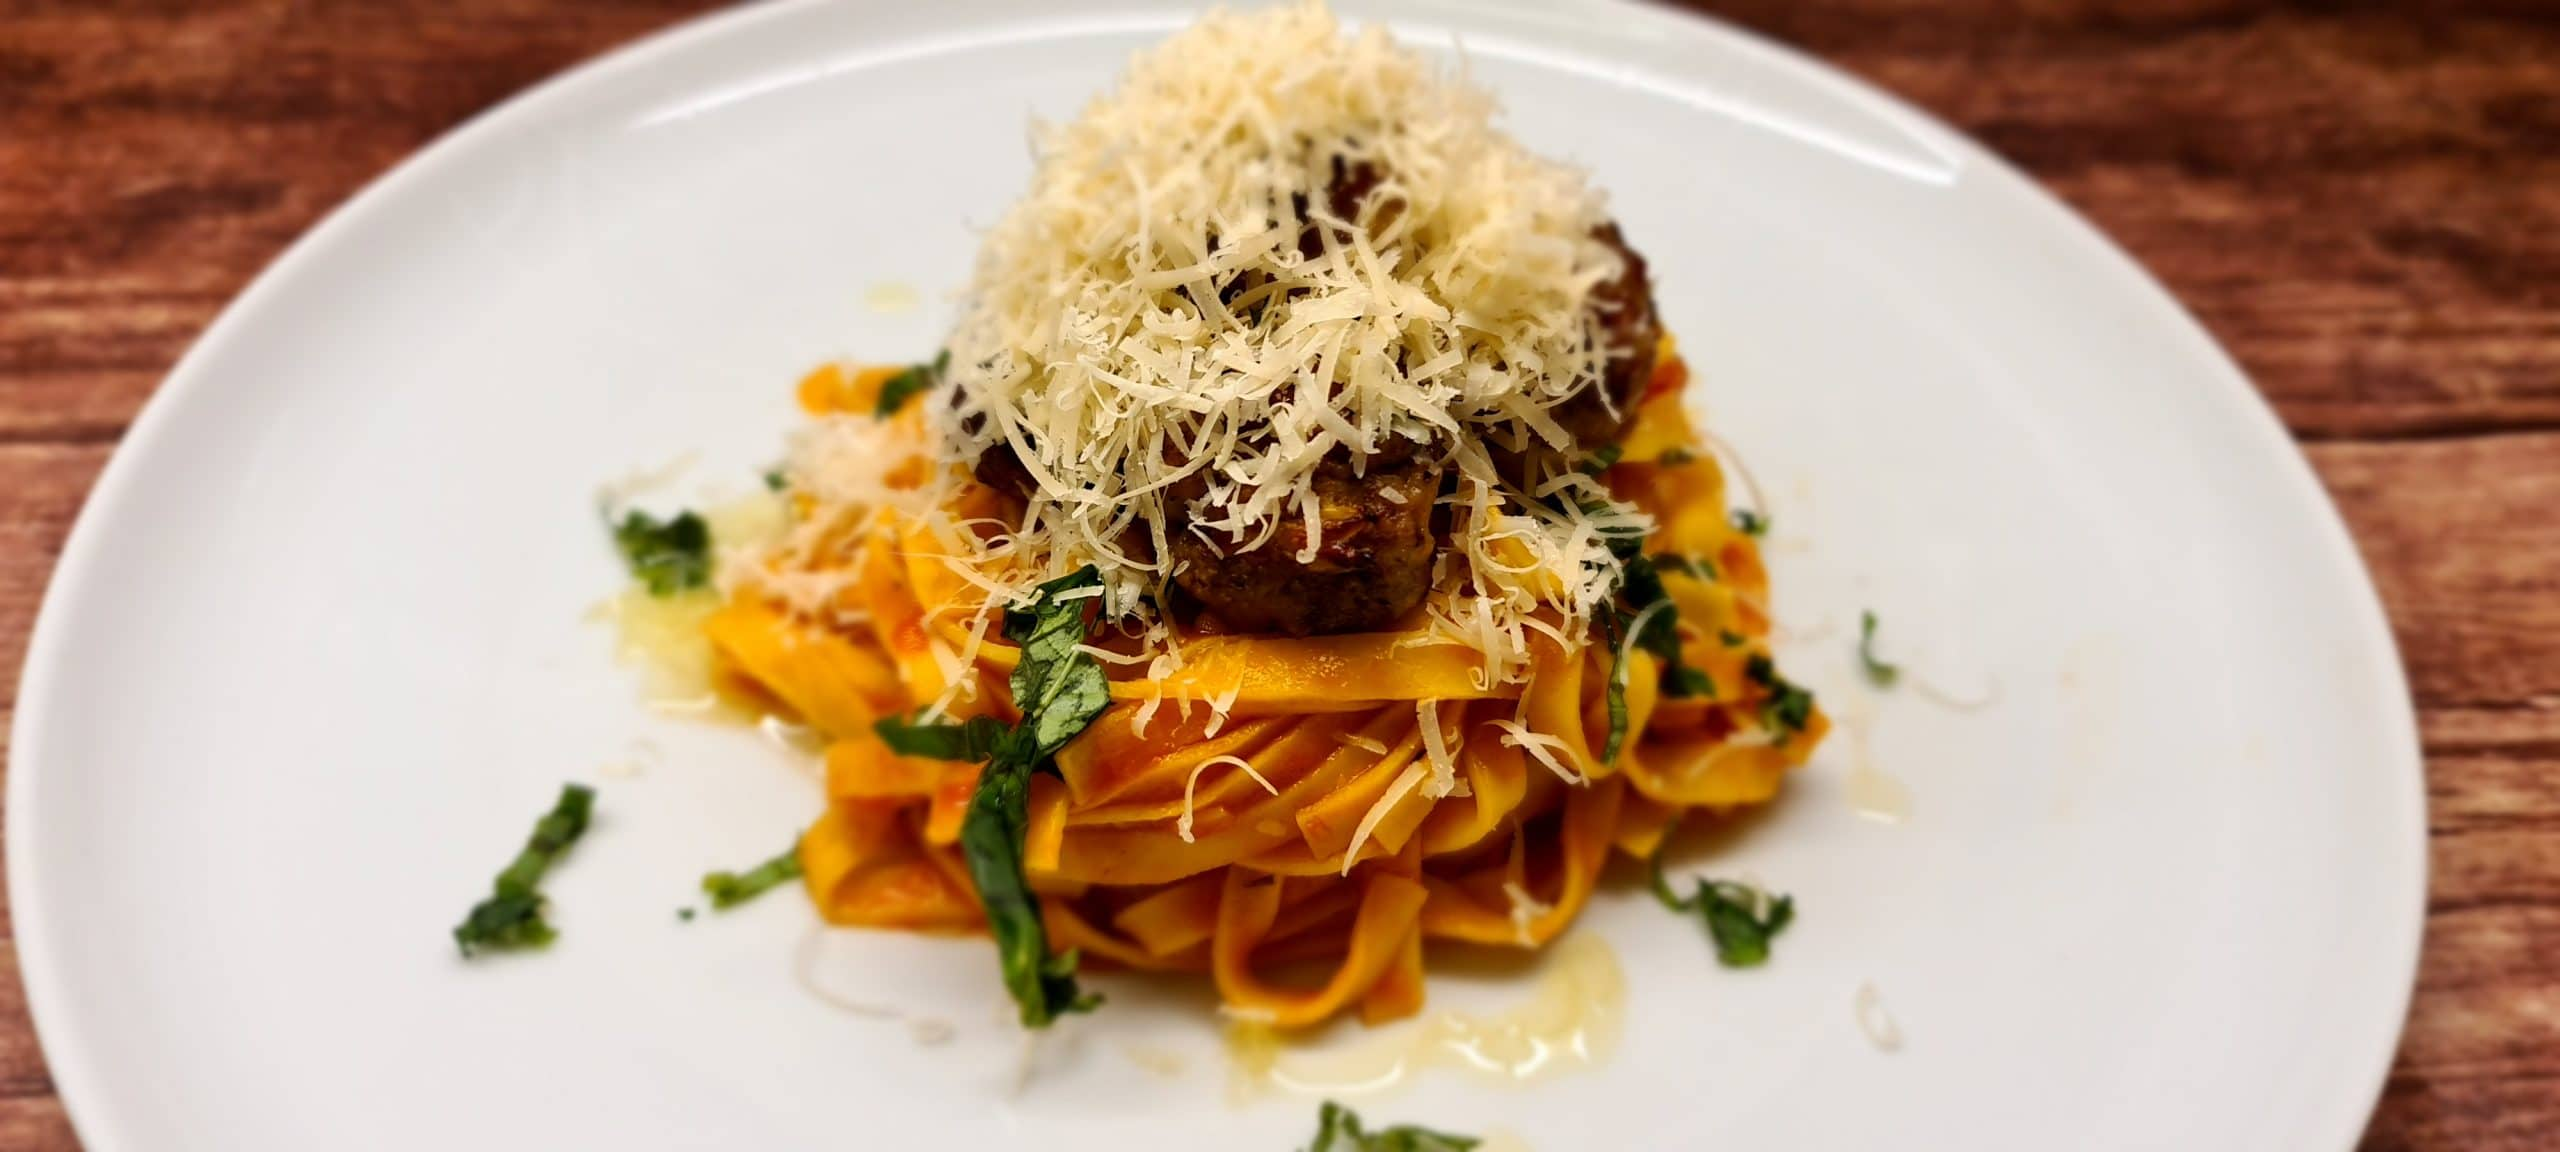 You are currently viewing Italian Meatballs with Tagliatelle and Tomato and Basil Sauce